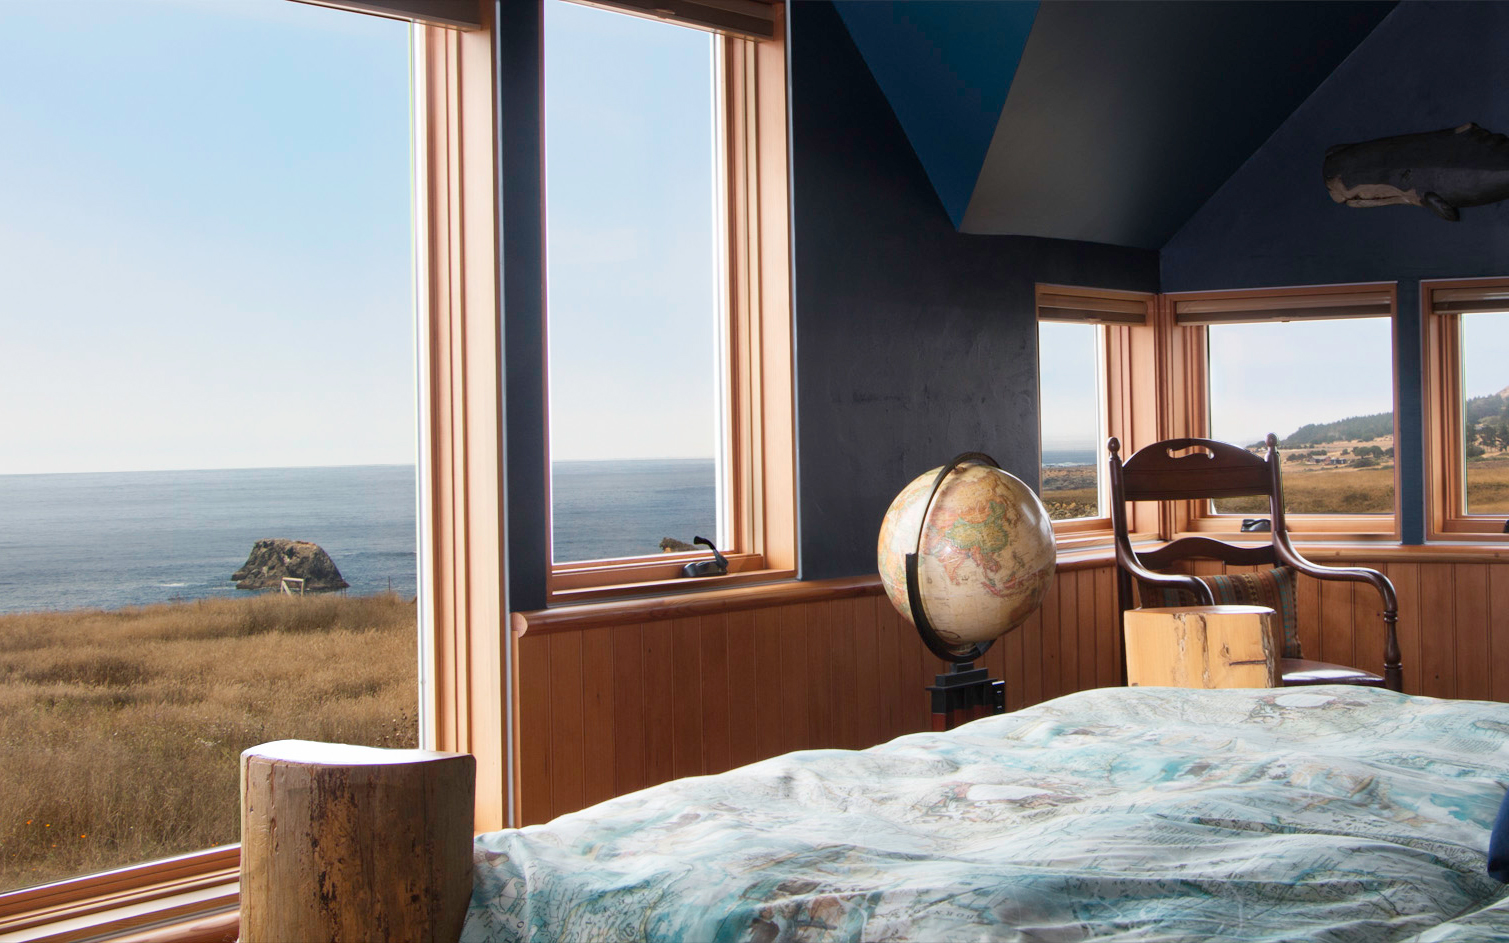 The Inn at Newport Ranch, in California's North Coast, Opens This Month